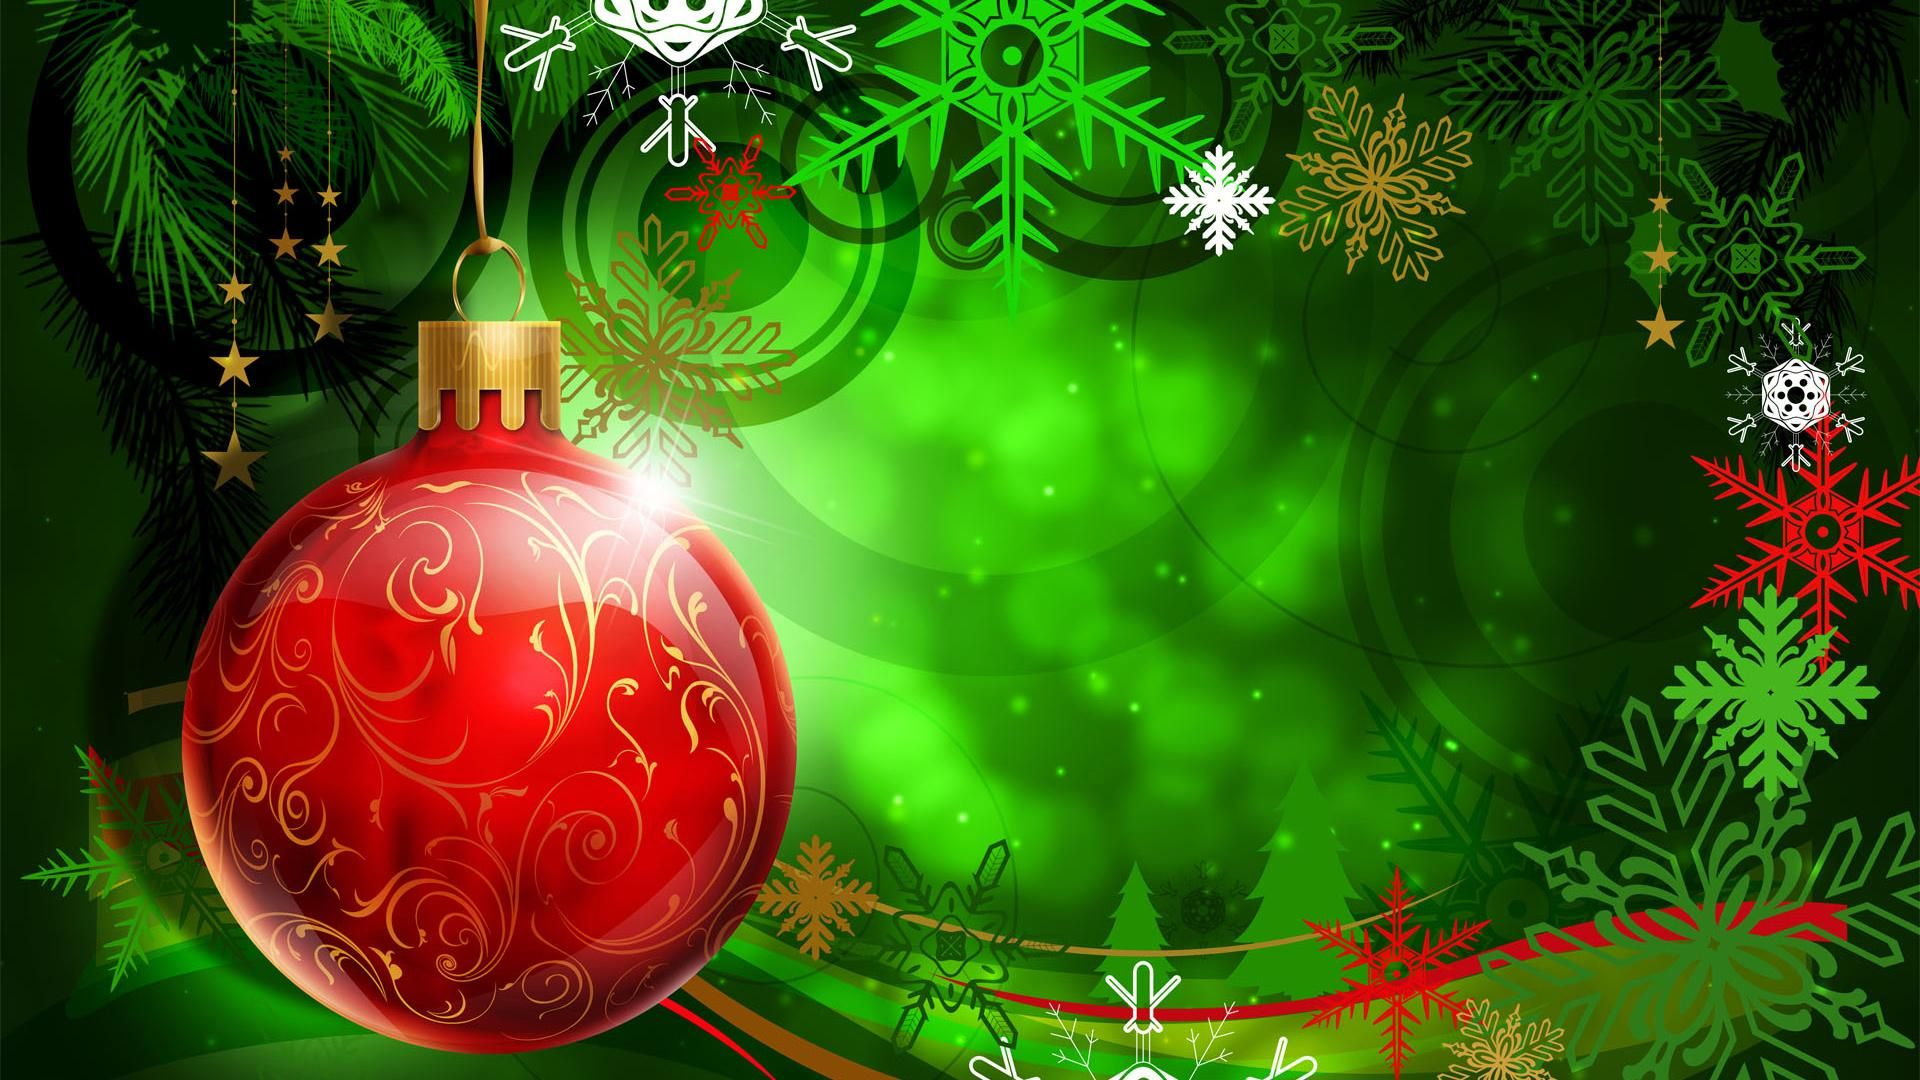 3d Moving Wallpaper 3d Animated Christmas Pics 3d Animated Christmas Phot Colorful Christmas Decorations Merry Christmas Wallpaper Christmas Wallpaper Hd